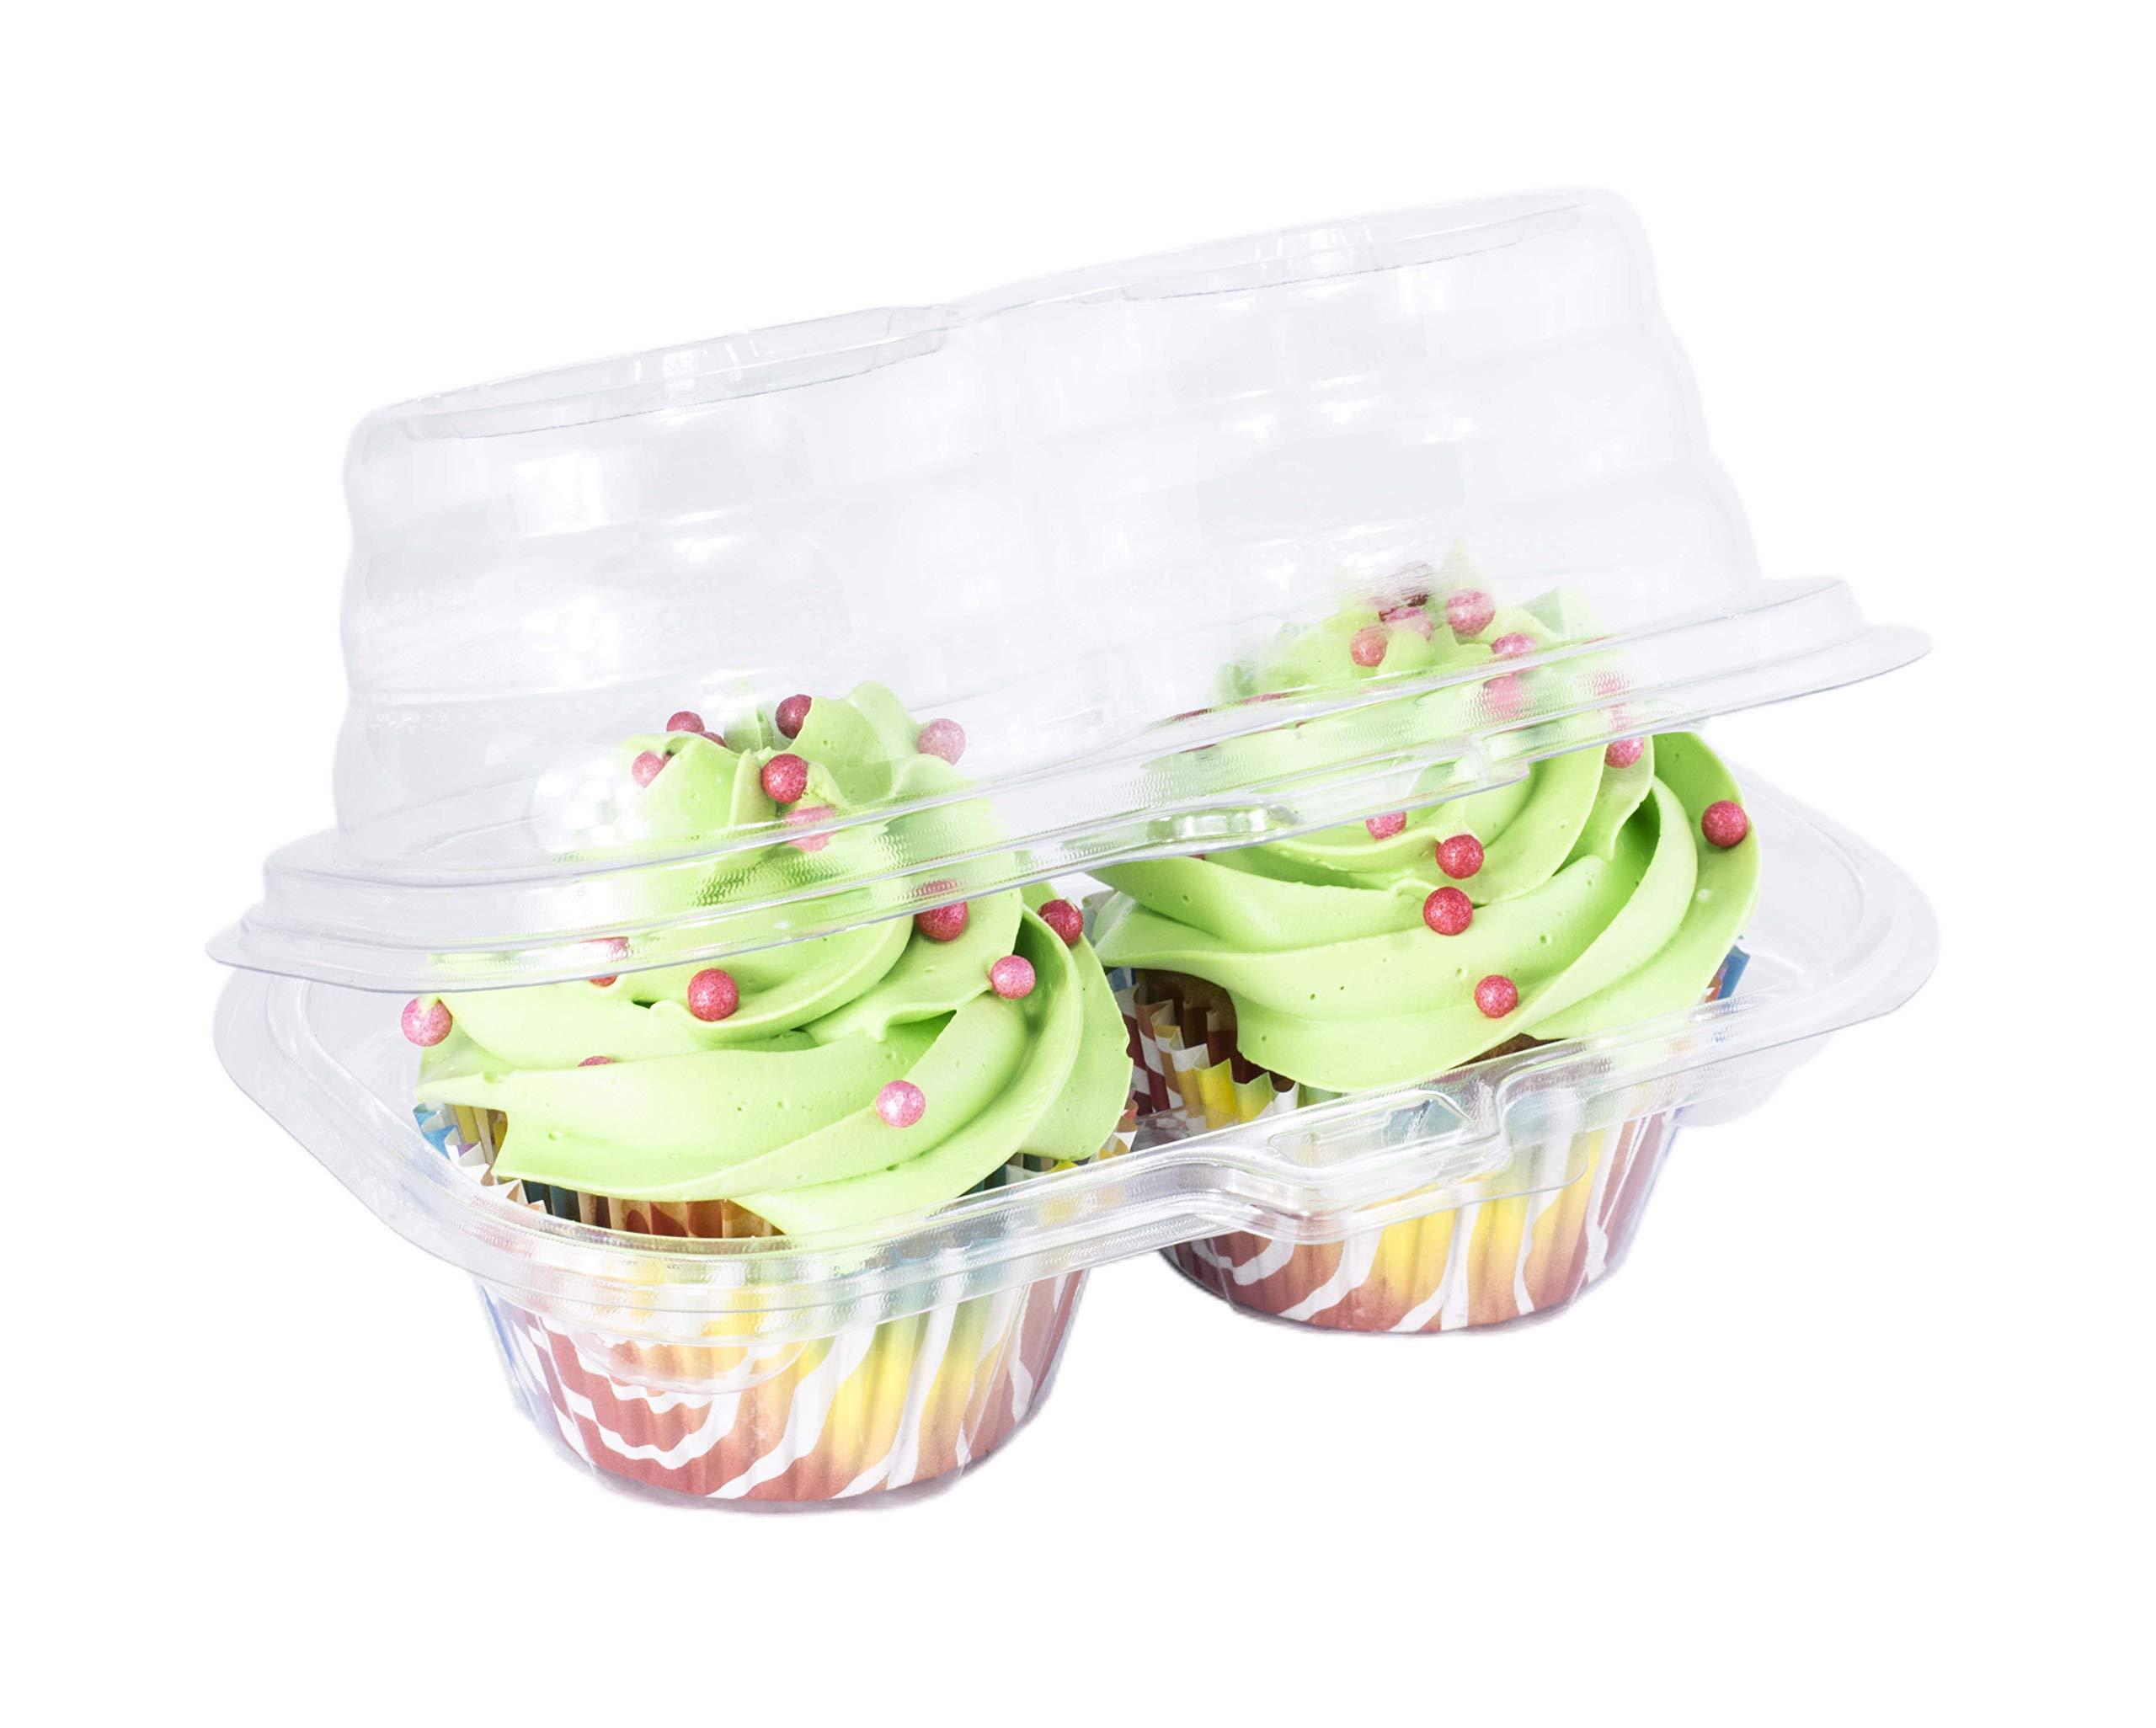 Katgely 2 Compartment Cupcake Container - Deep Cupcake Carrier Holder Box - BPA-Free - Clear Plastic Stackable (50) by katgely